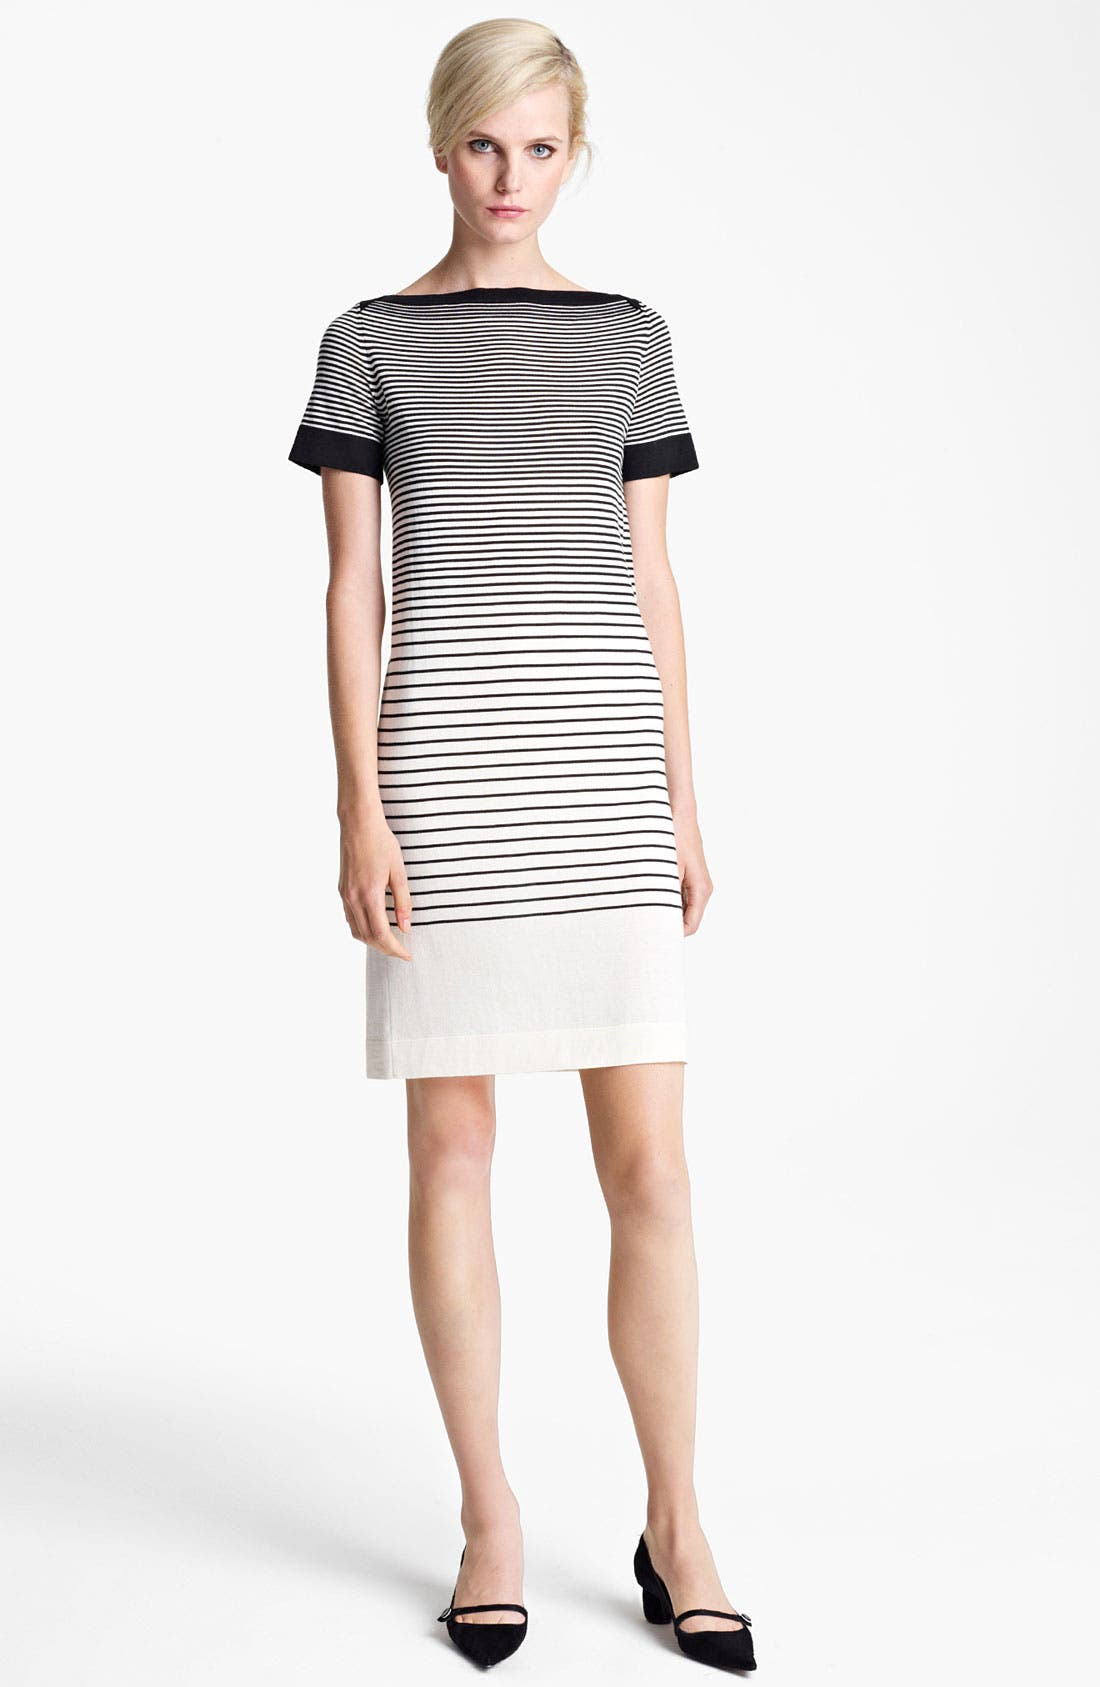 Main Image - MARC JACOBS Stripe Short Sleeve Dress